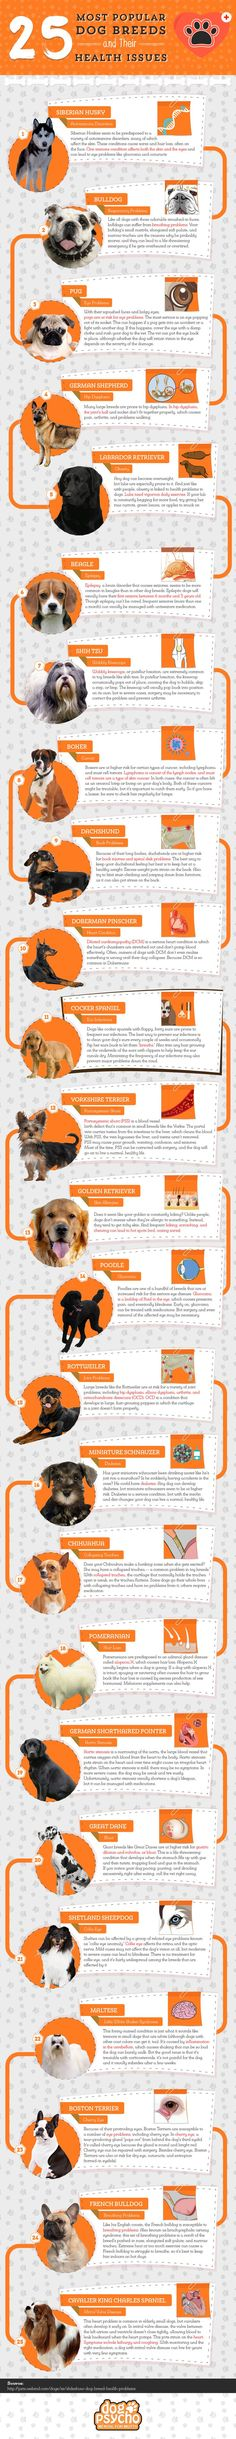 Common Health Problems in Six Popular Dog Breeds [Infographic] @KaufmannsPuppy